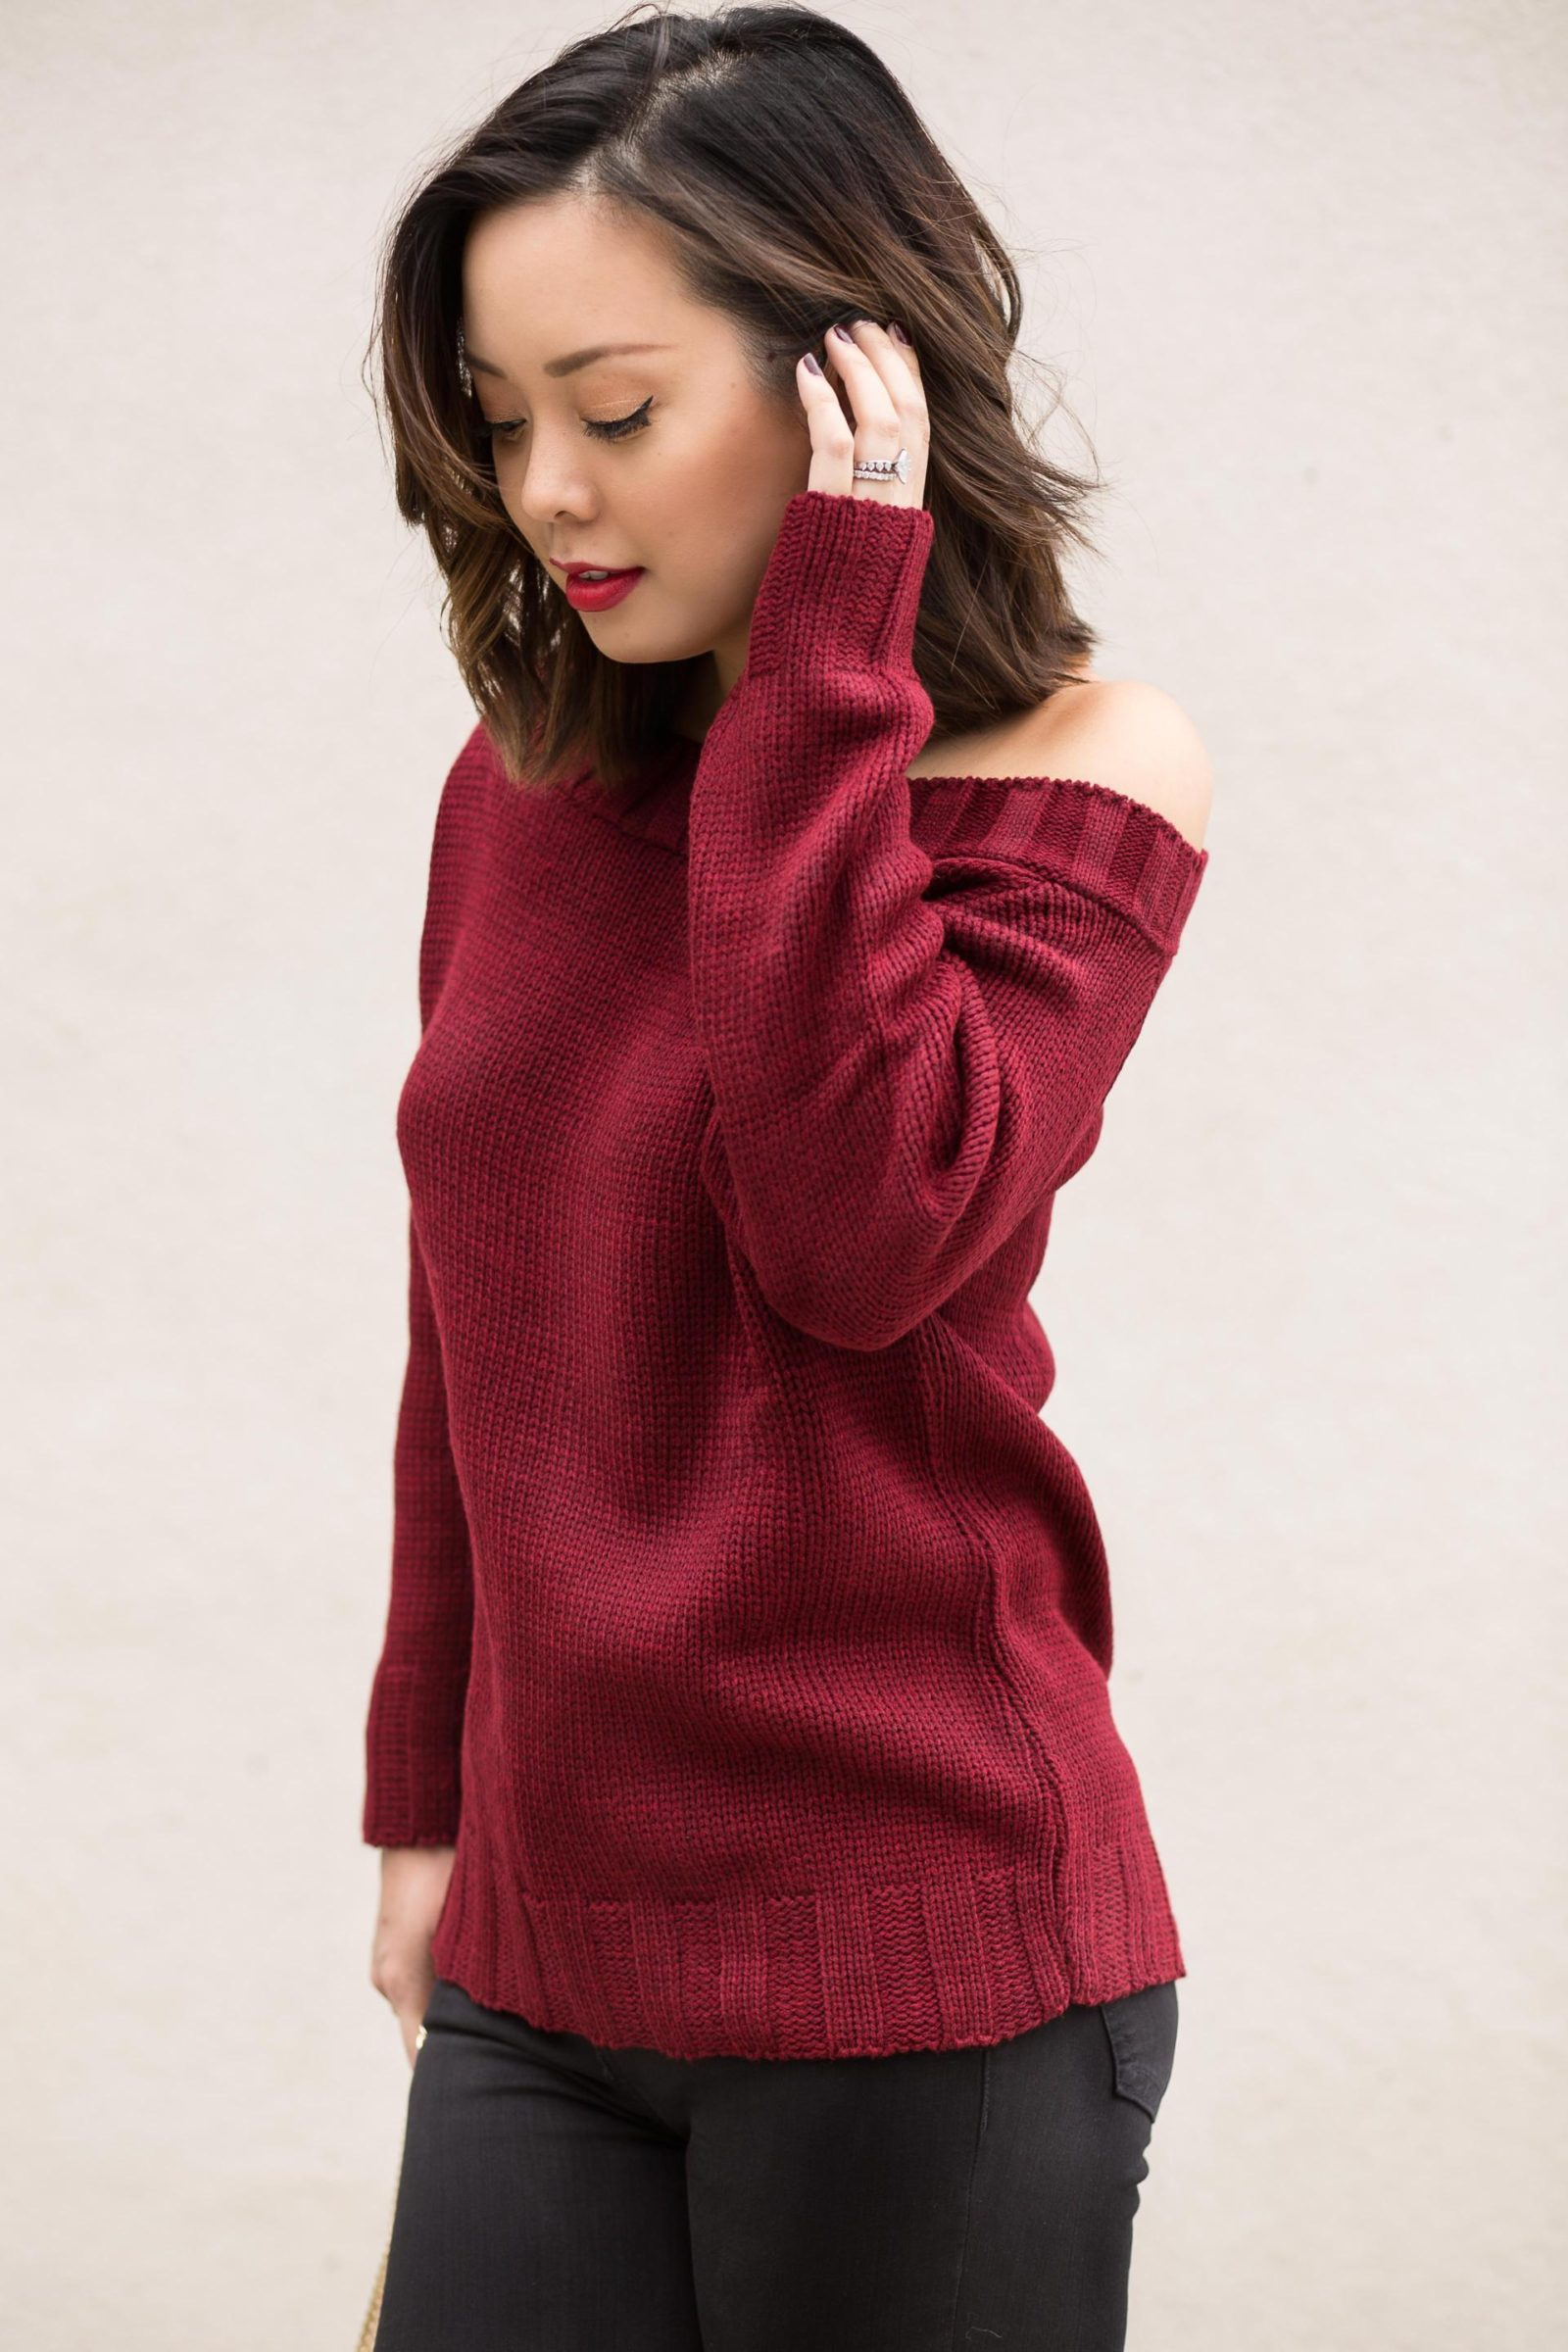 power color red serein wu red sweater